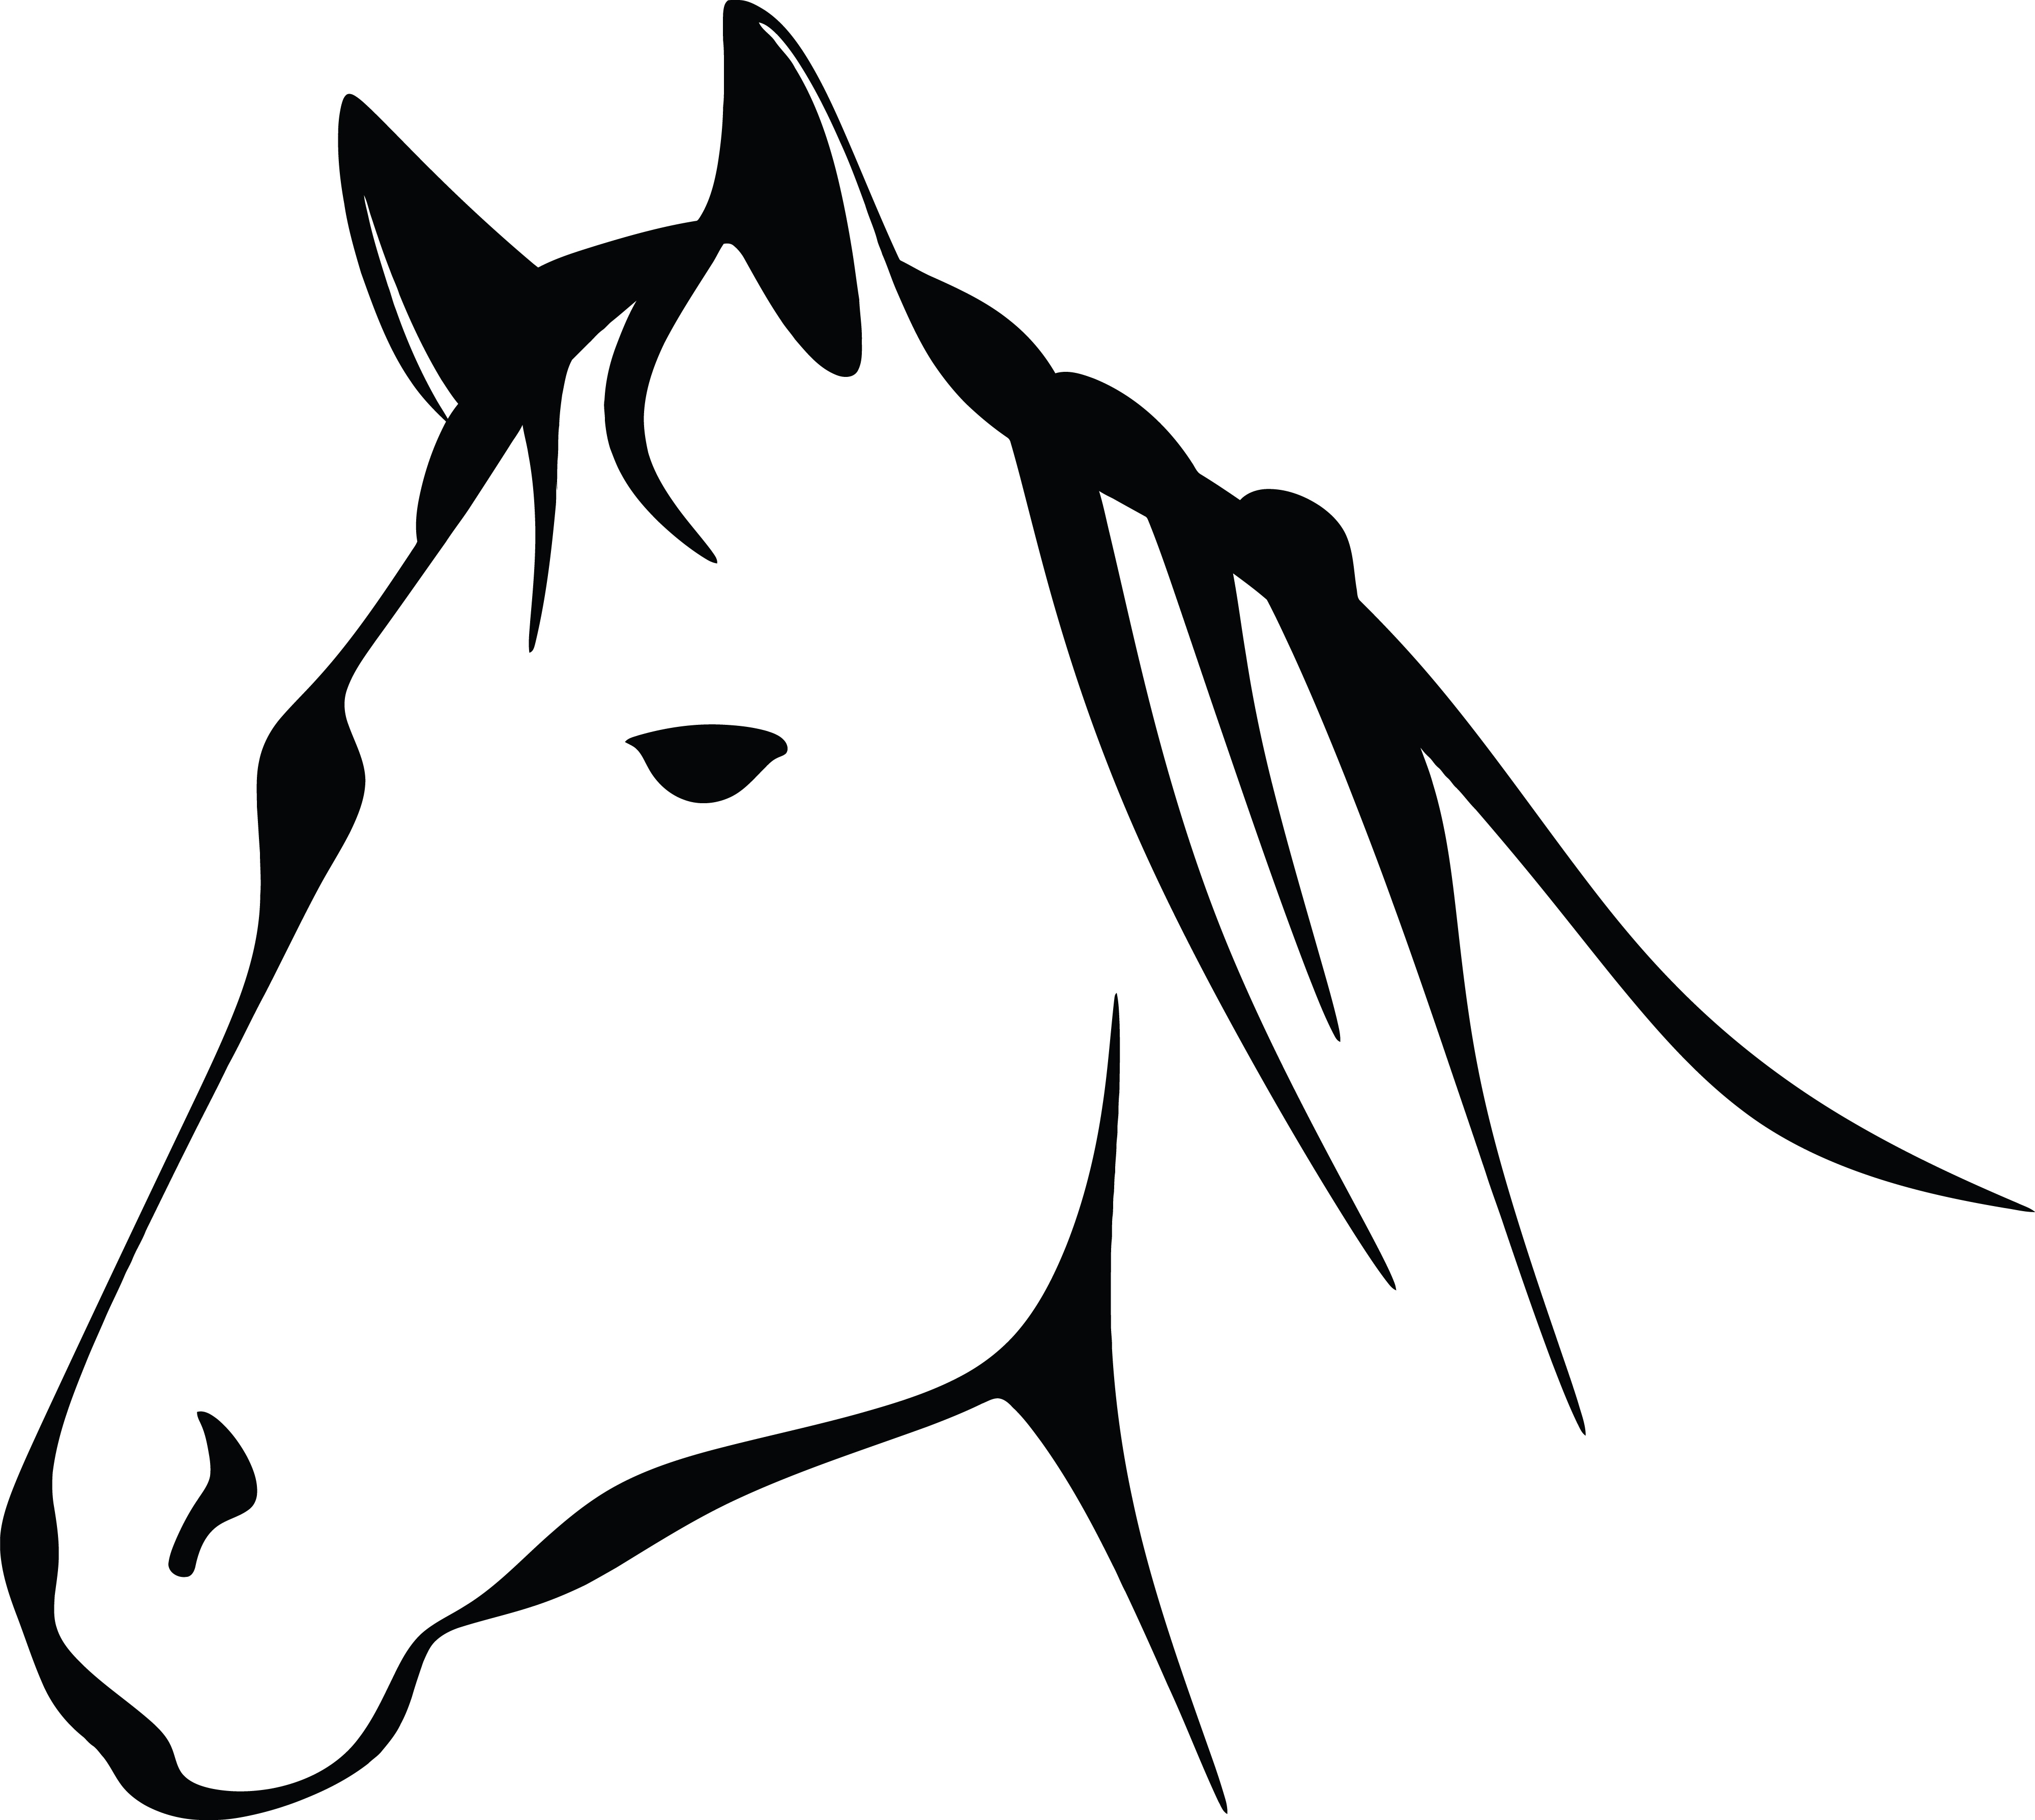 Free Clipart Of A black and white horse head.